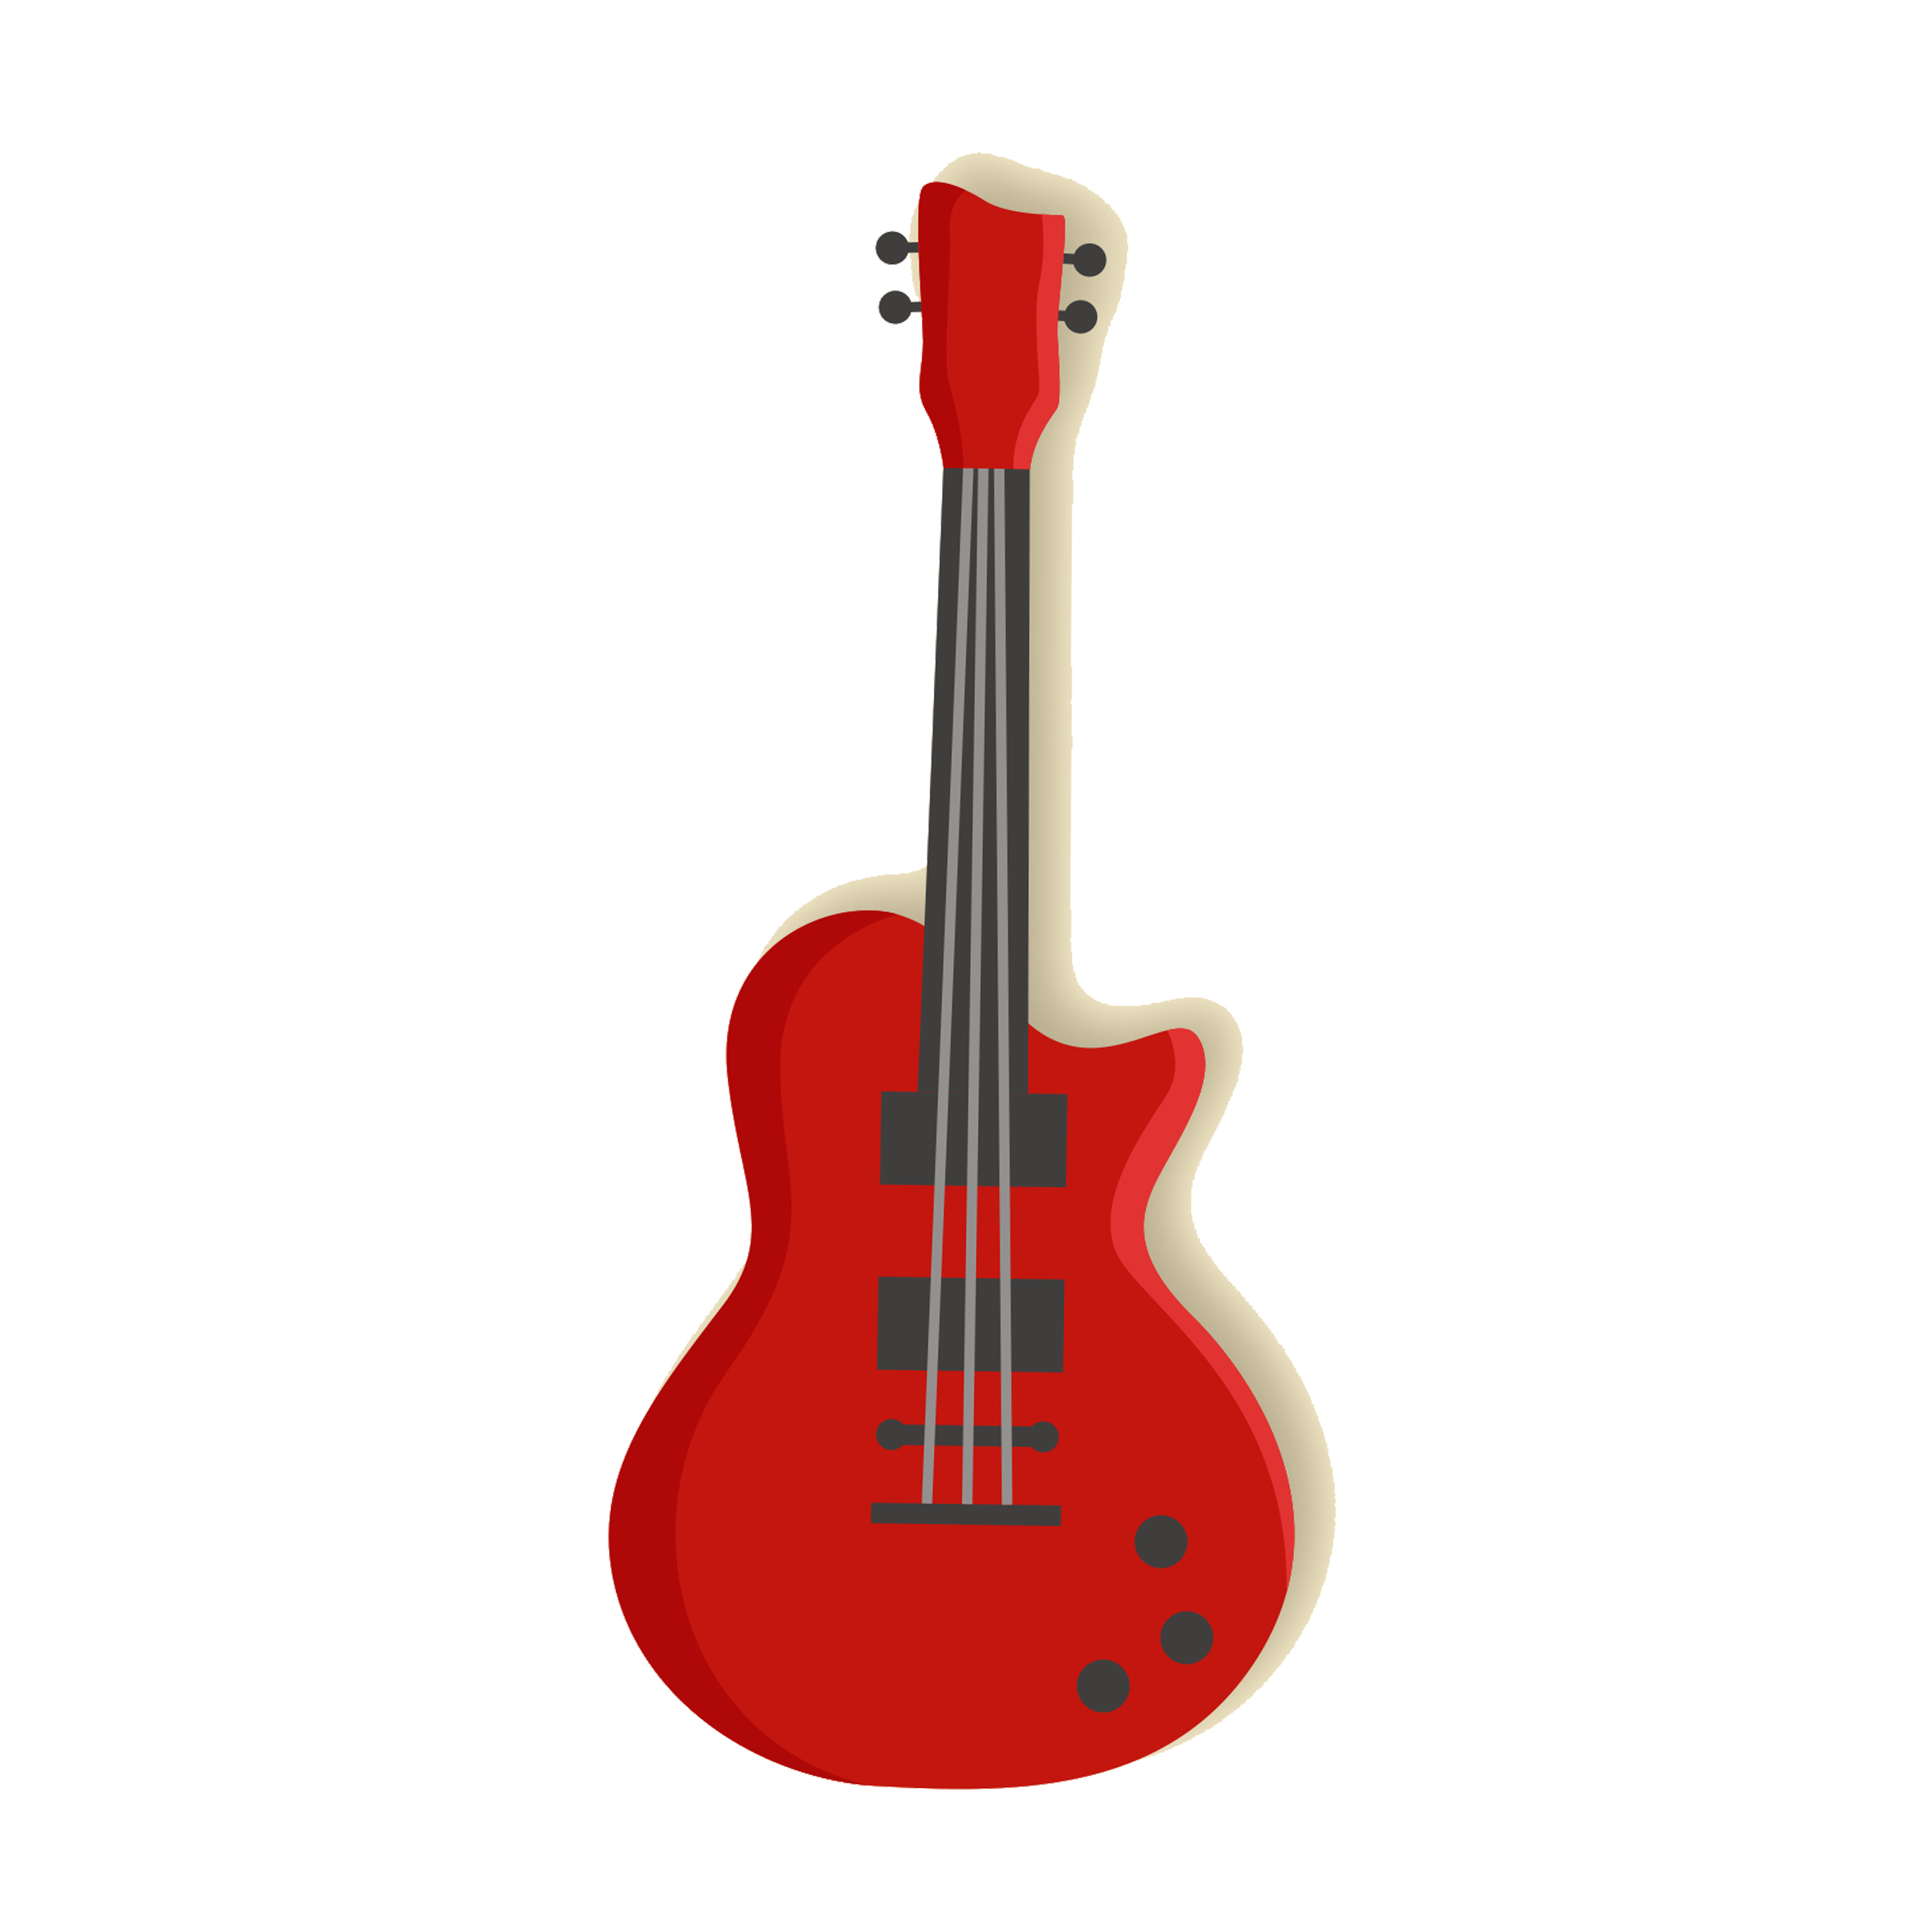 Guitar Neck Vector